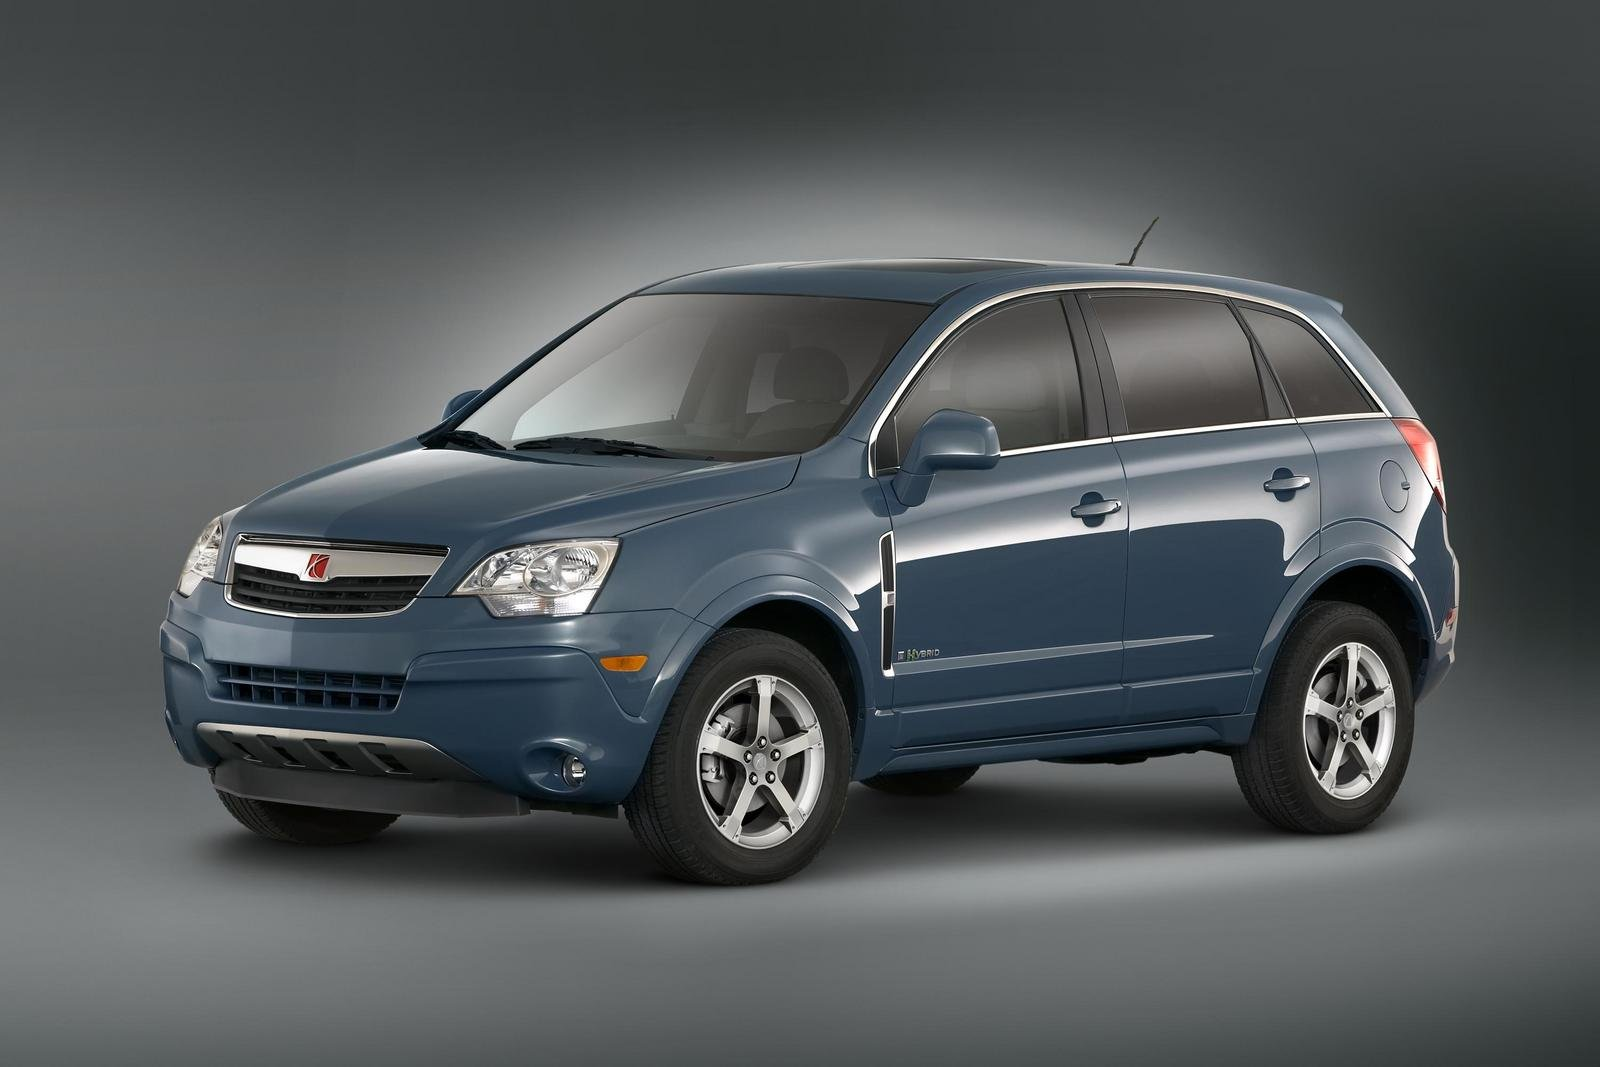 2008 Saturn Vue Green Line Hybrid Review - Top Speed